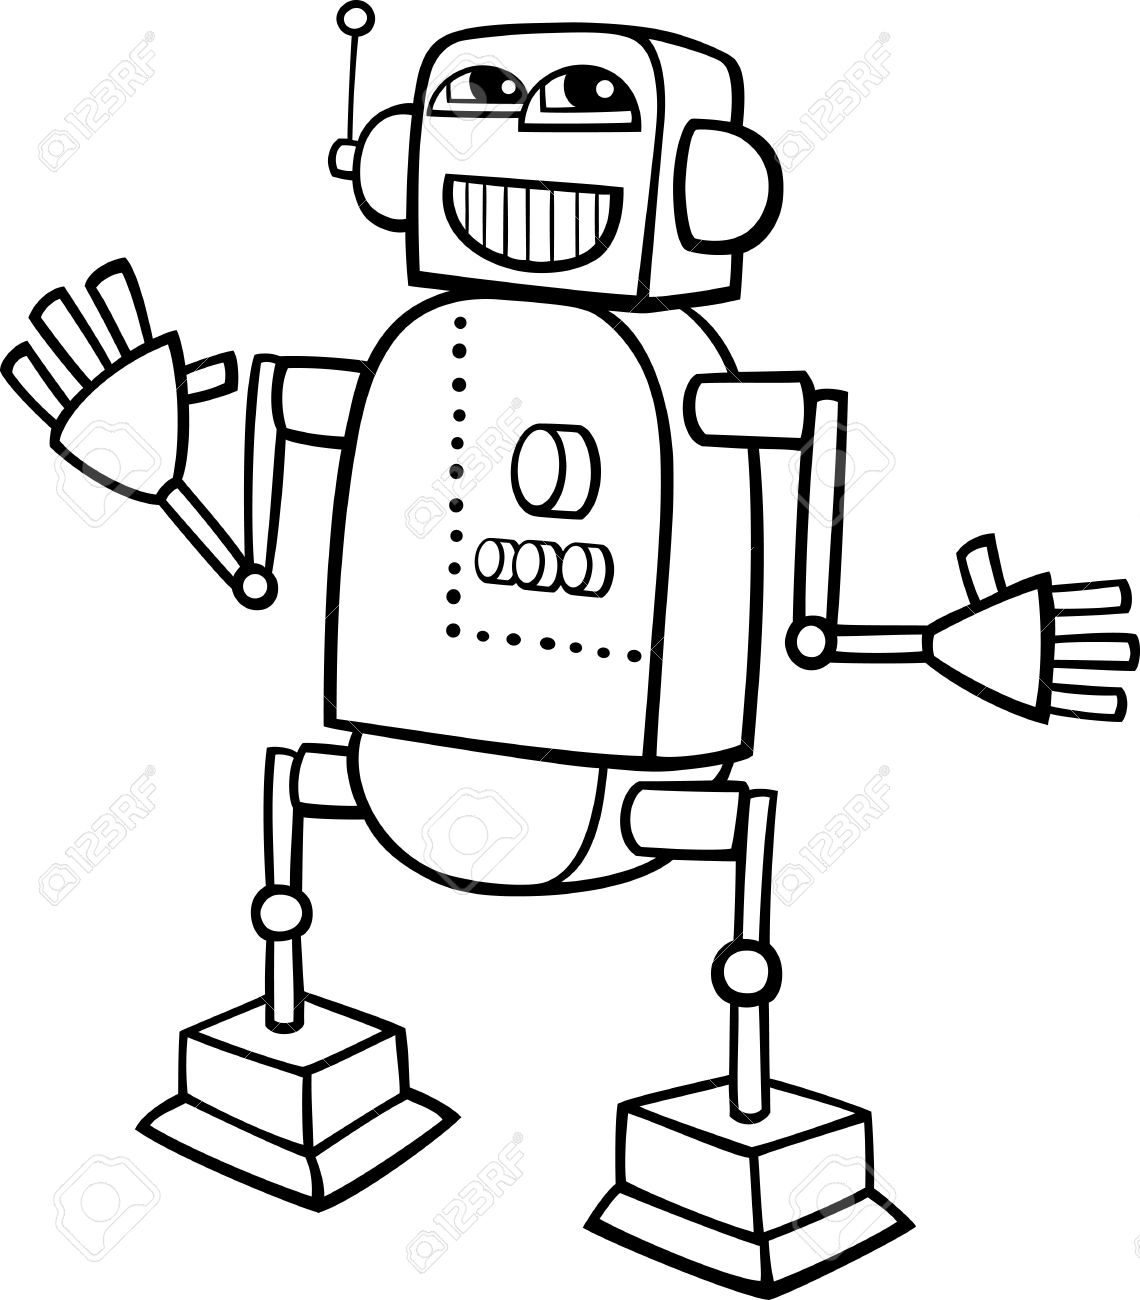 Robot clipart black and white 1 » Clipart Station.